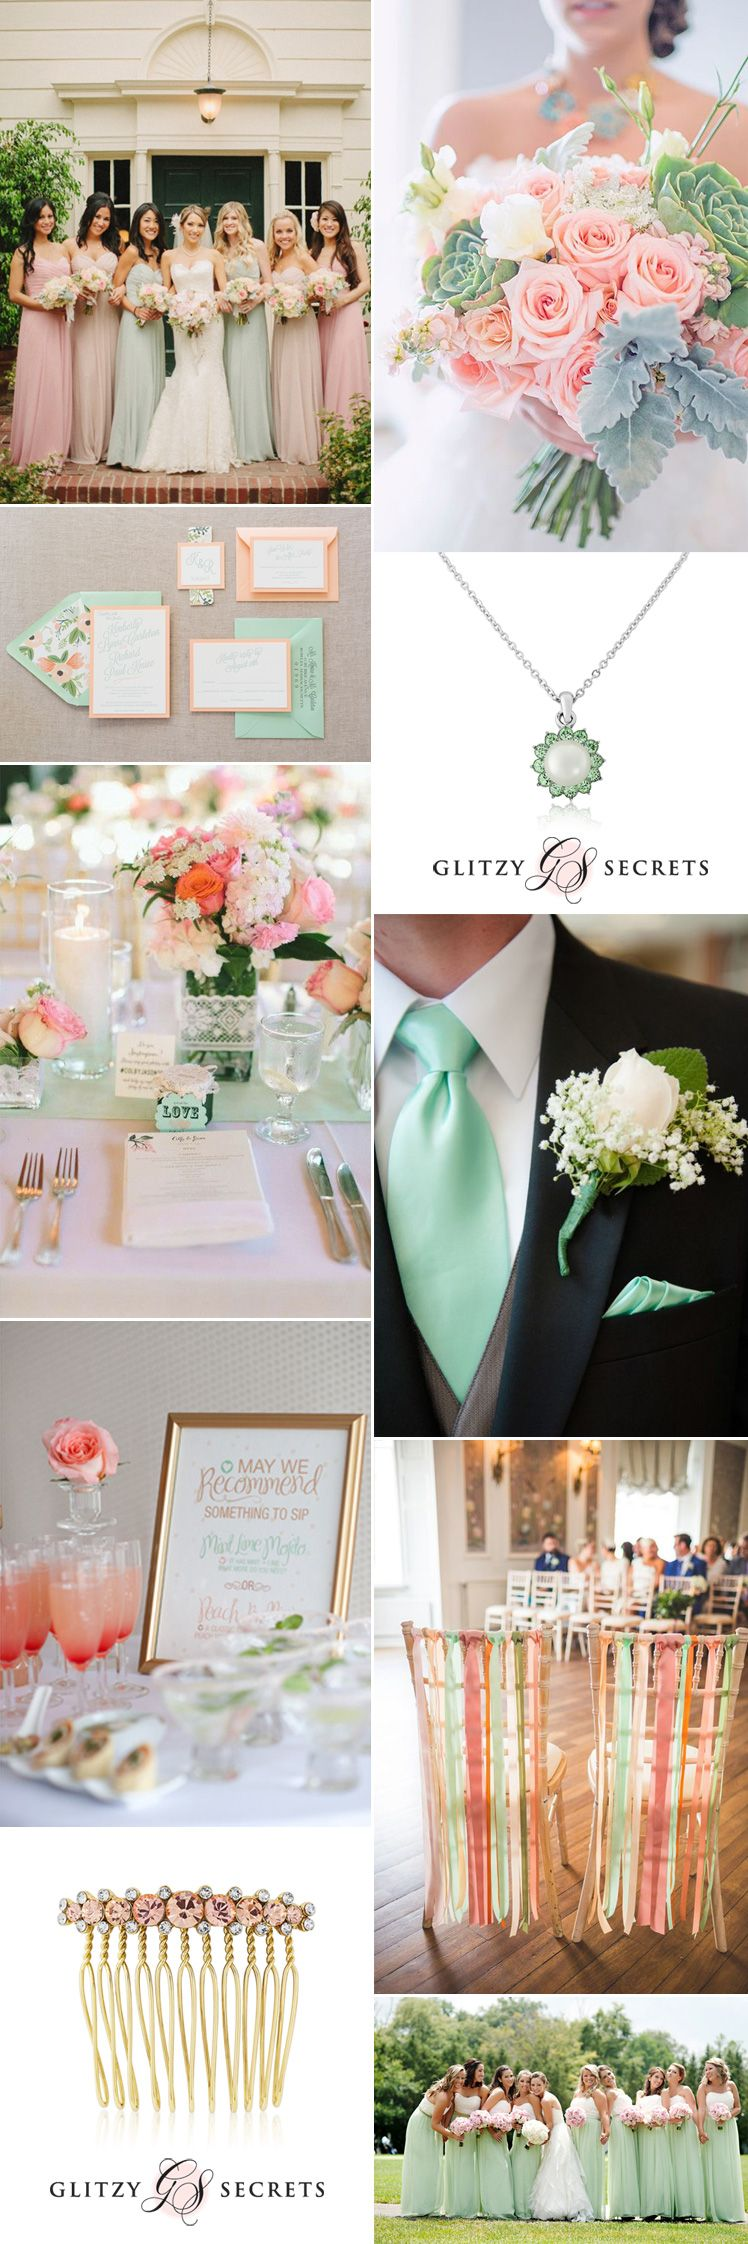 Summer Mint and Peach Wedding Ideas | Pinterest | Peach, Inspiration ...